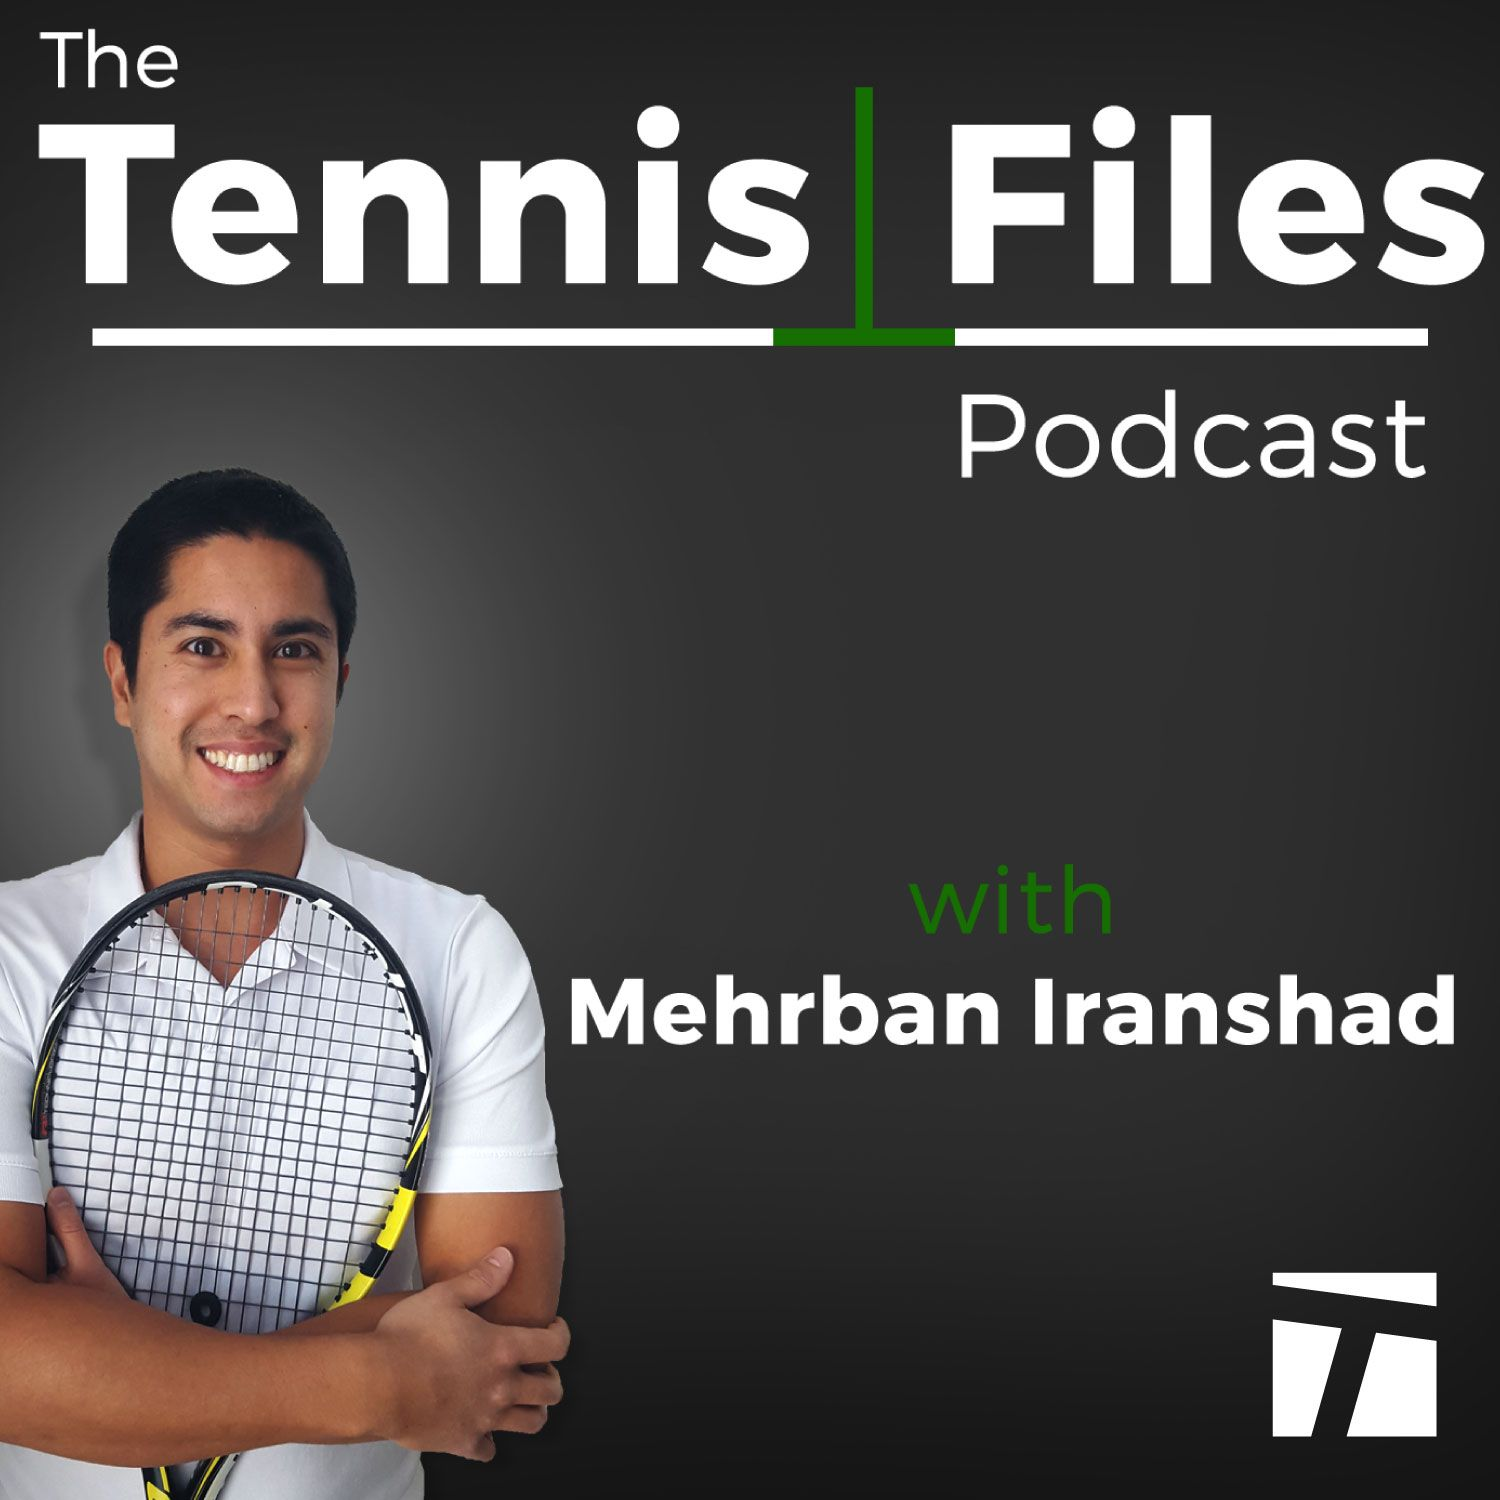 TFP 187: Q&A Edition - Forehand Power, Second Serve Consistency, Concentration Tips, and More!